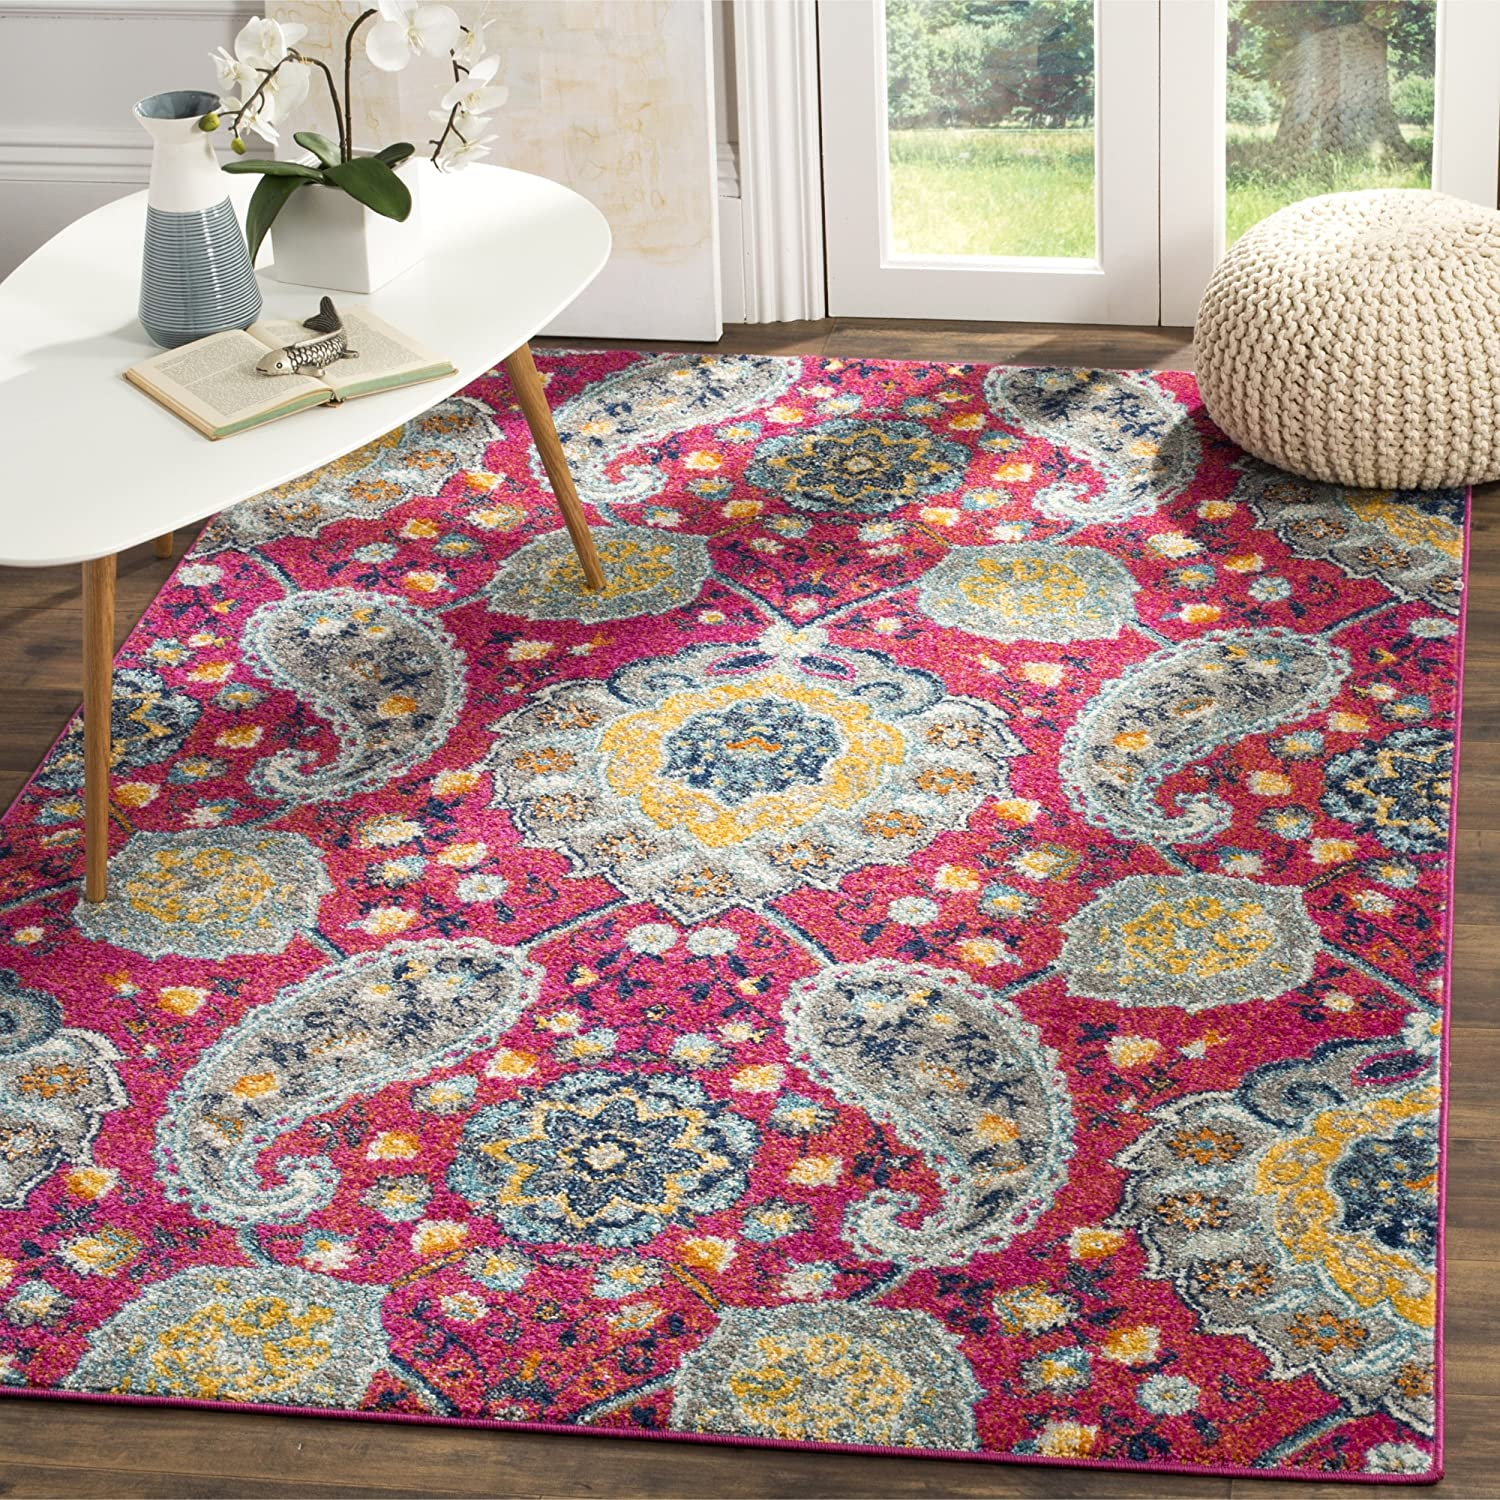 Safavieh Madison Collection MAD600C Cream and Light Grey Bohemian Chic Paisley Area Rug (8' x 10')